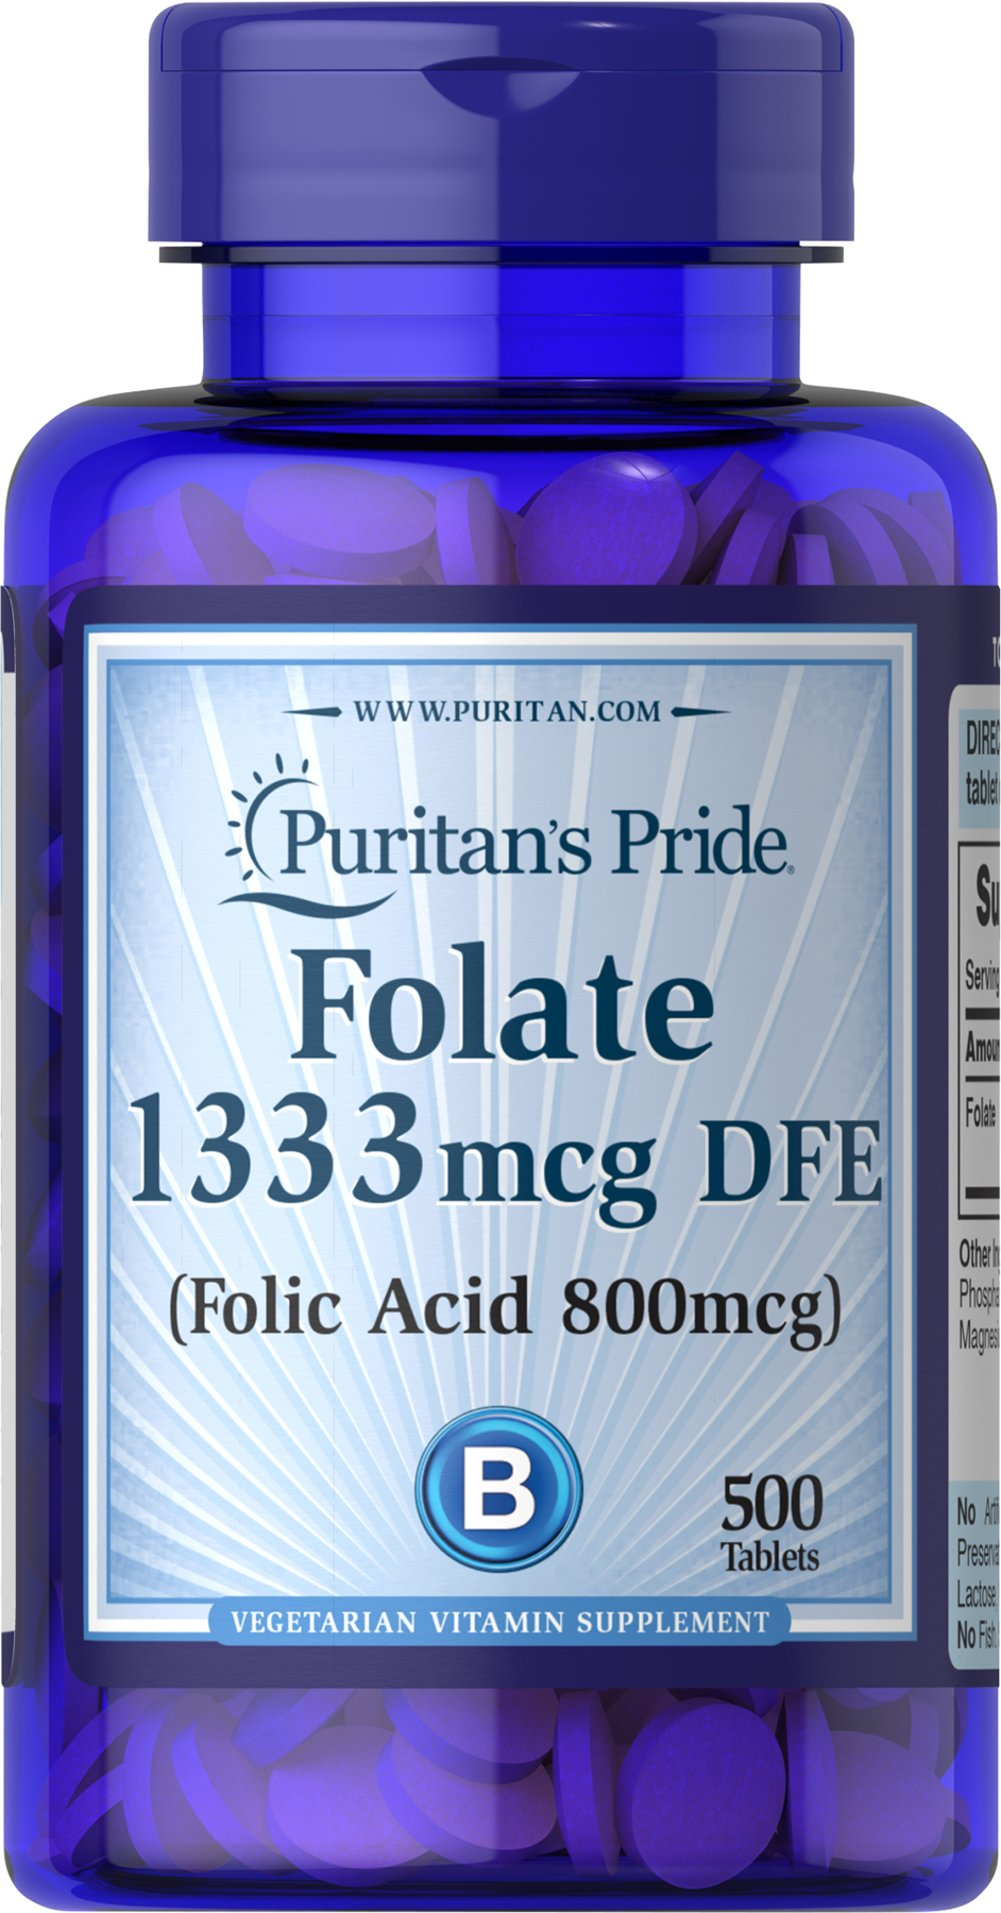 Folic Acid 800 mcg <p>It's well known that Folic Acid is important for pregnant women, but did you also know that this essential B Vitamin also supports cardiovascular health in women and men?** Folic Acid is part of a triad of B Vitamins - along with Vitamins B-6 and B-12 - that helps promote heart health.**</p> 500 Tablets 800 mcg $11.29